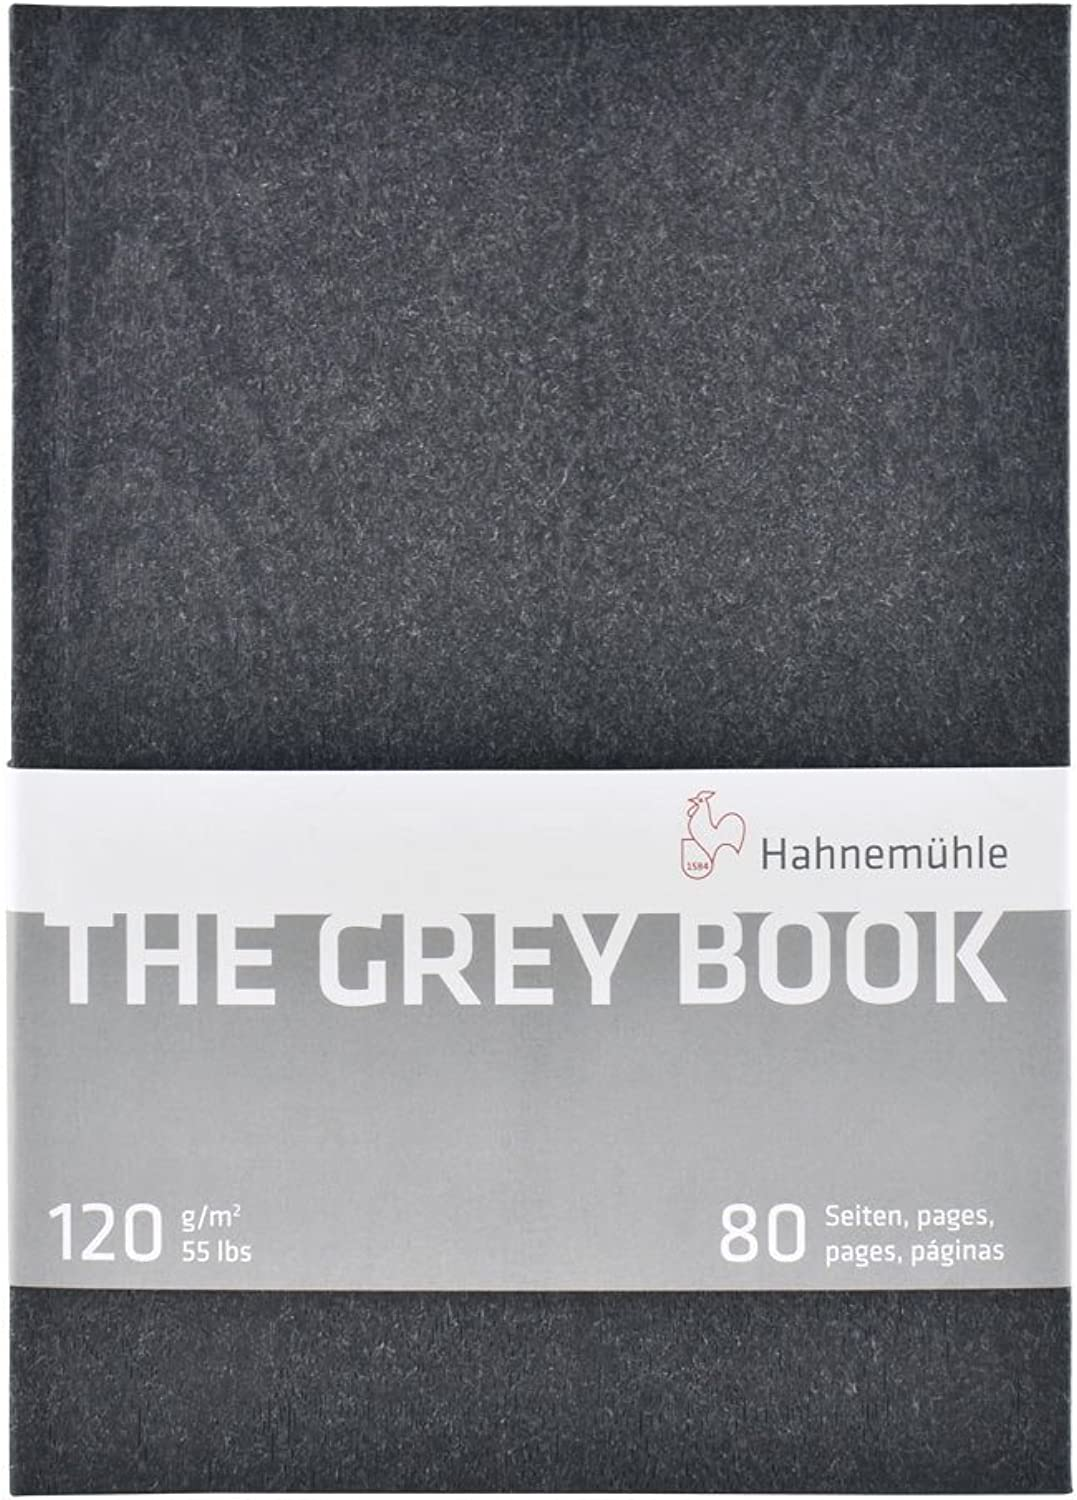 Hahnemuhle Grey Book Sketch Book A5 (8.3x5.8 inches) 120gsm 40 sheets 80 pages